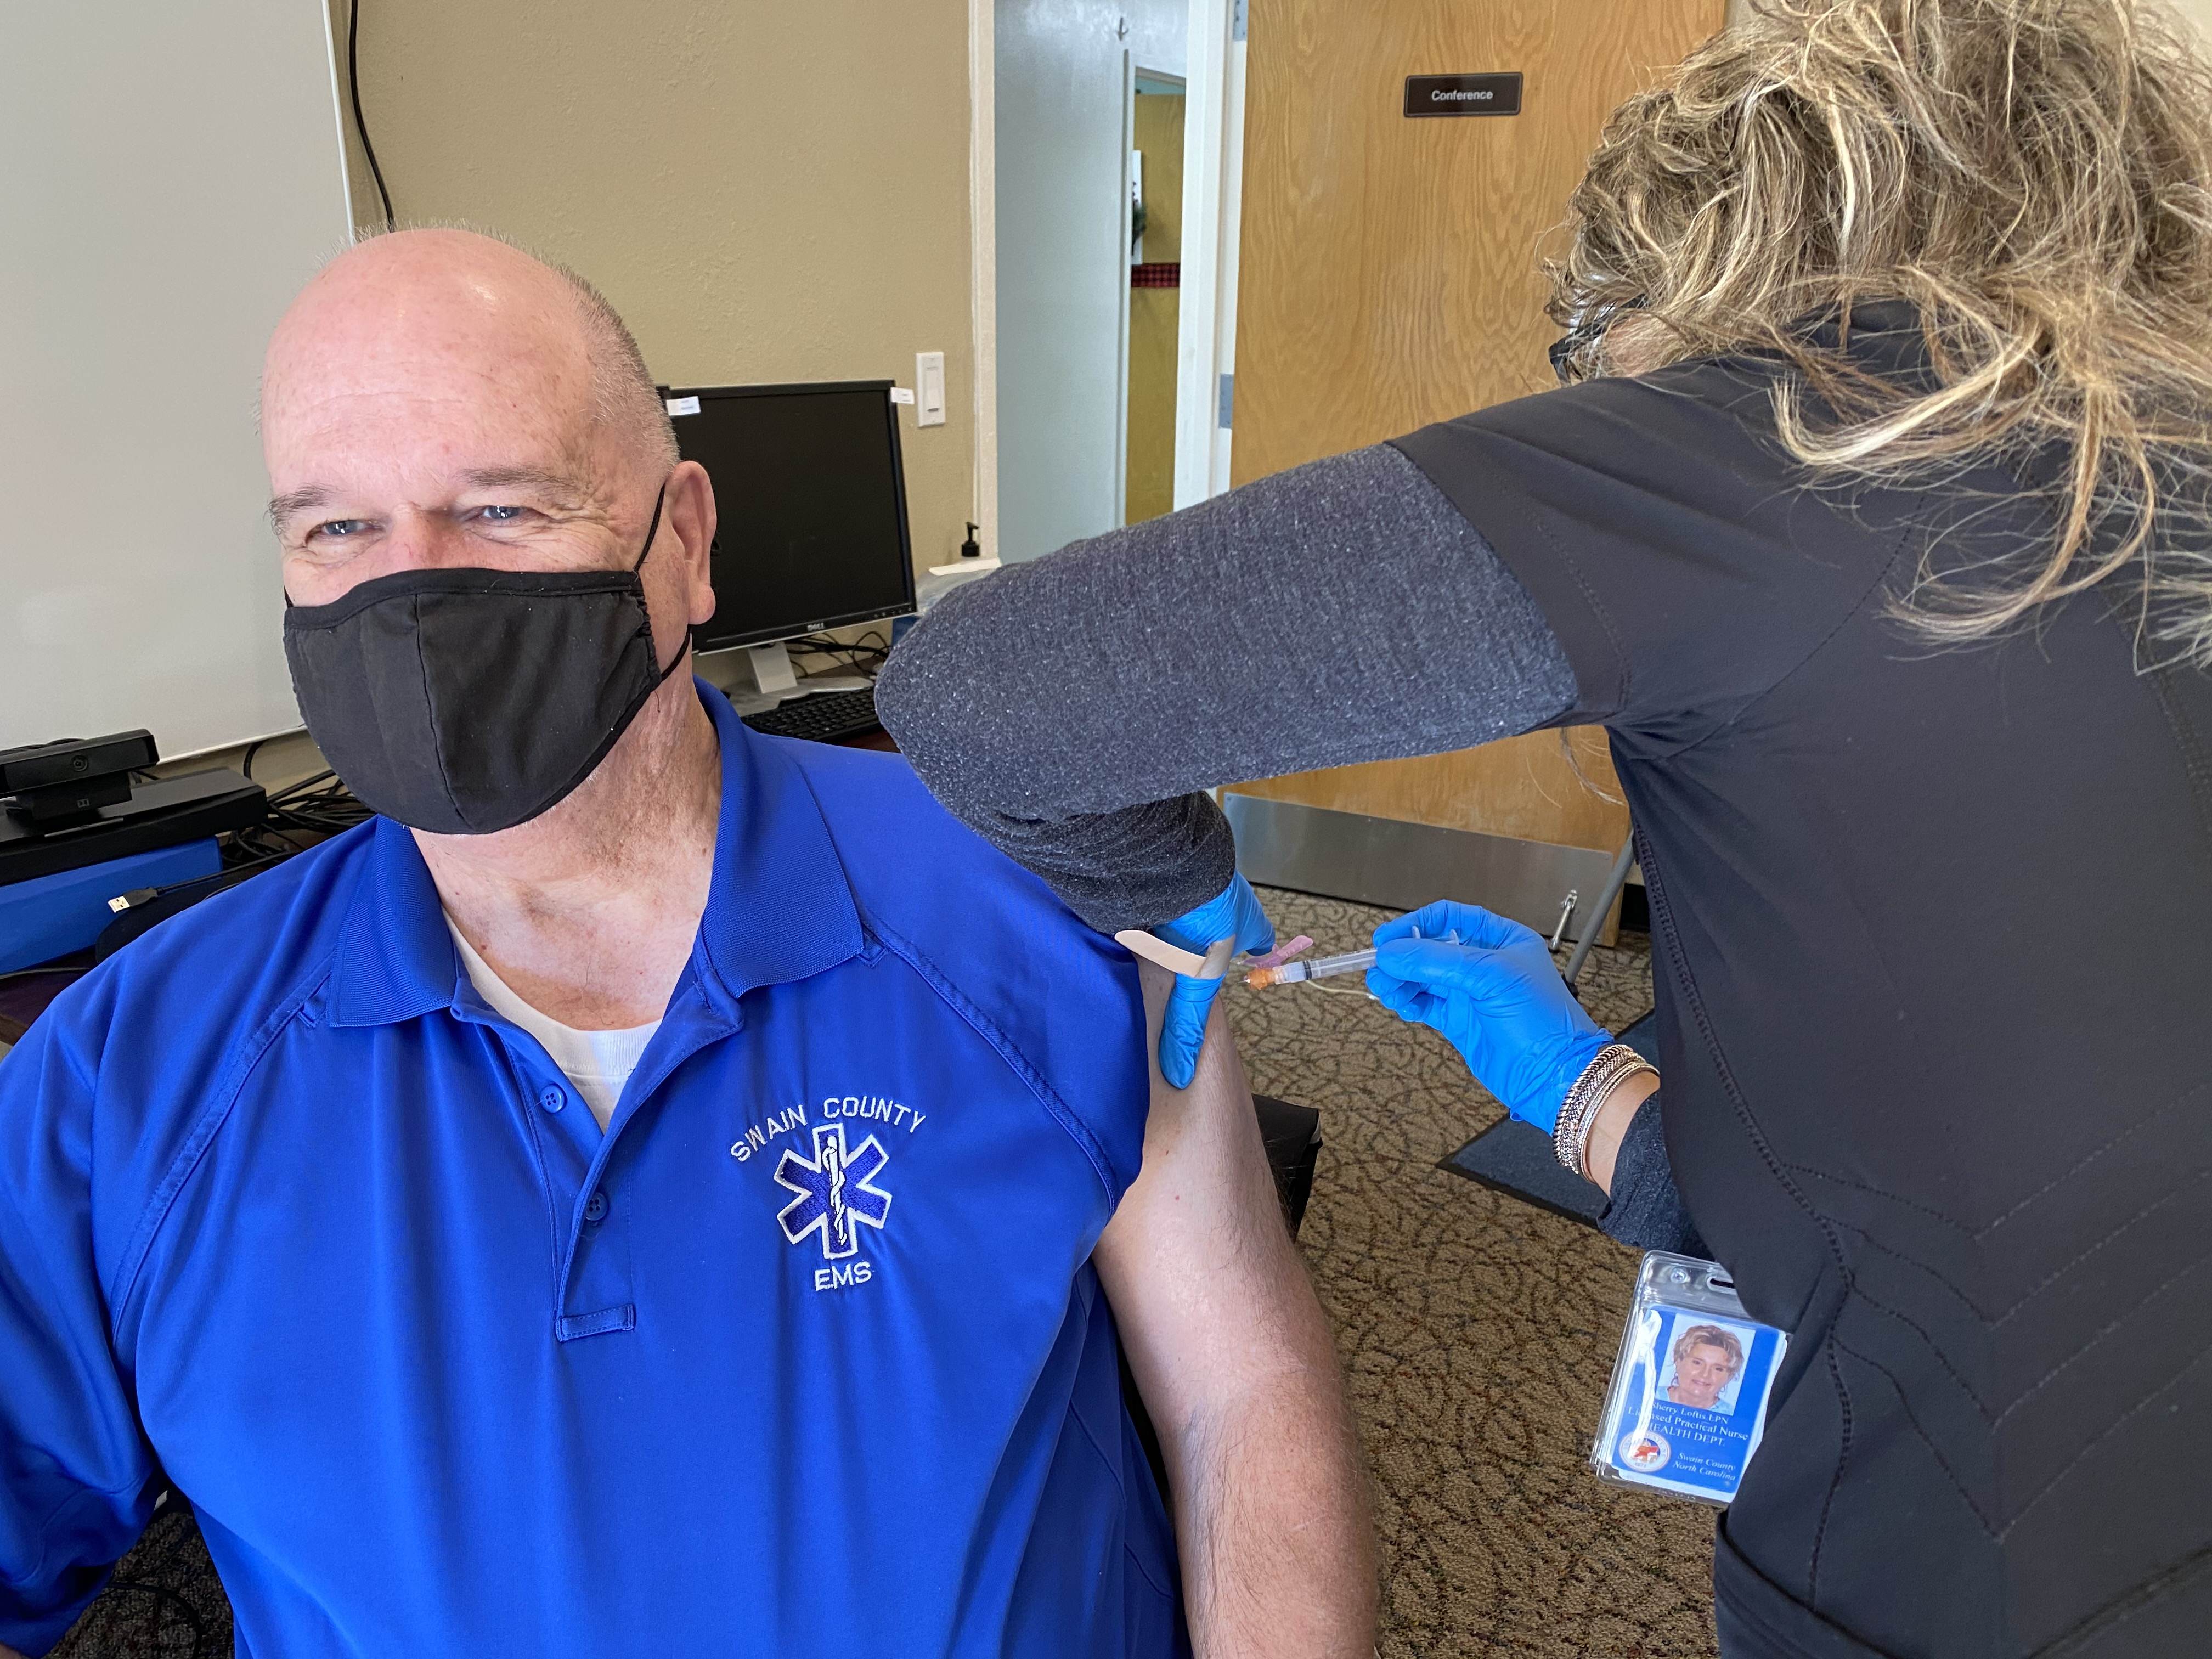 Swain County Health Department shared this photo of David Breedlove, Emergency Management Director, receiving the COVID-19 vaccine on Tuesday, Dec. 29.